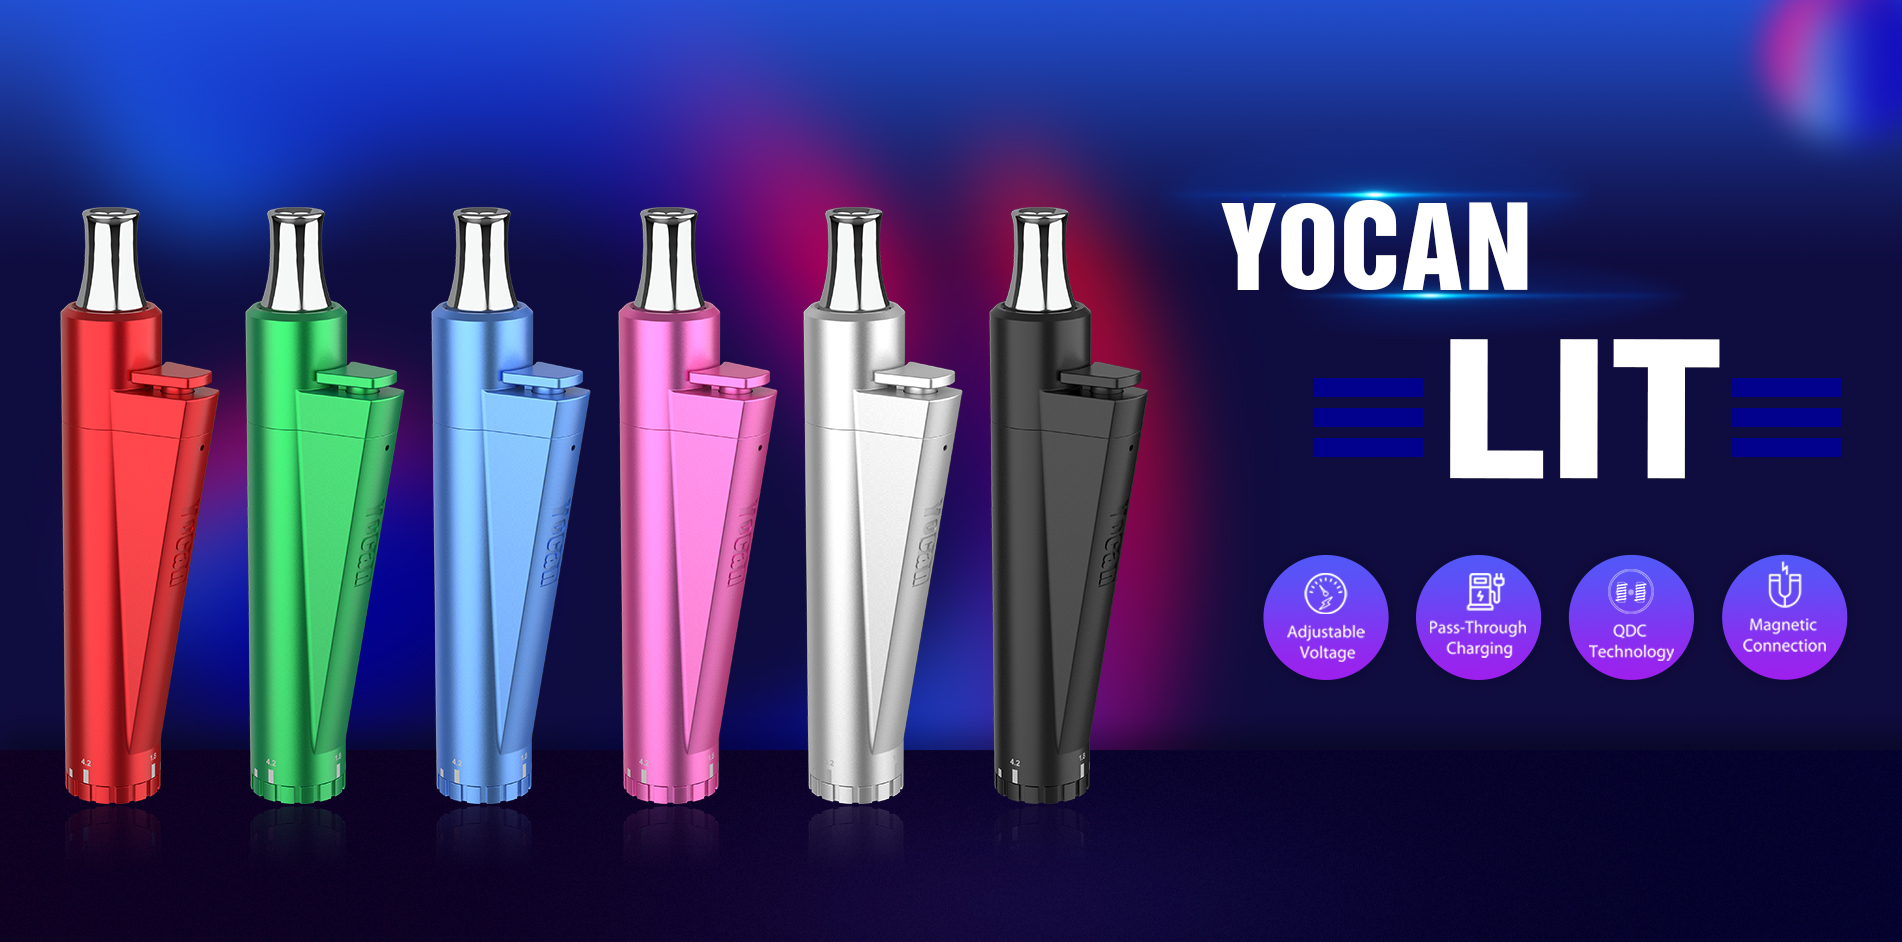 Yocan LIT, a twist pocket-sized vaporizer meets all your on the go vaping needs.